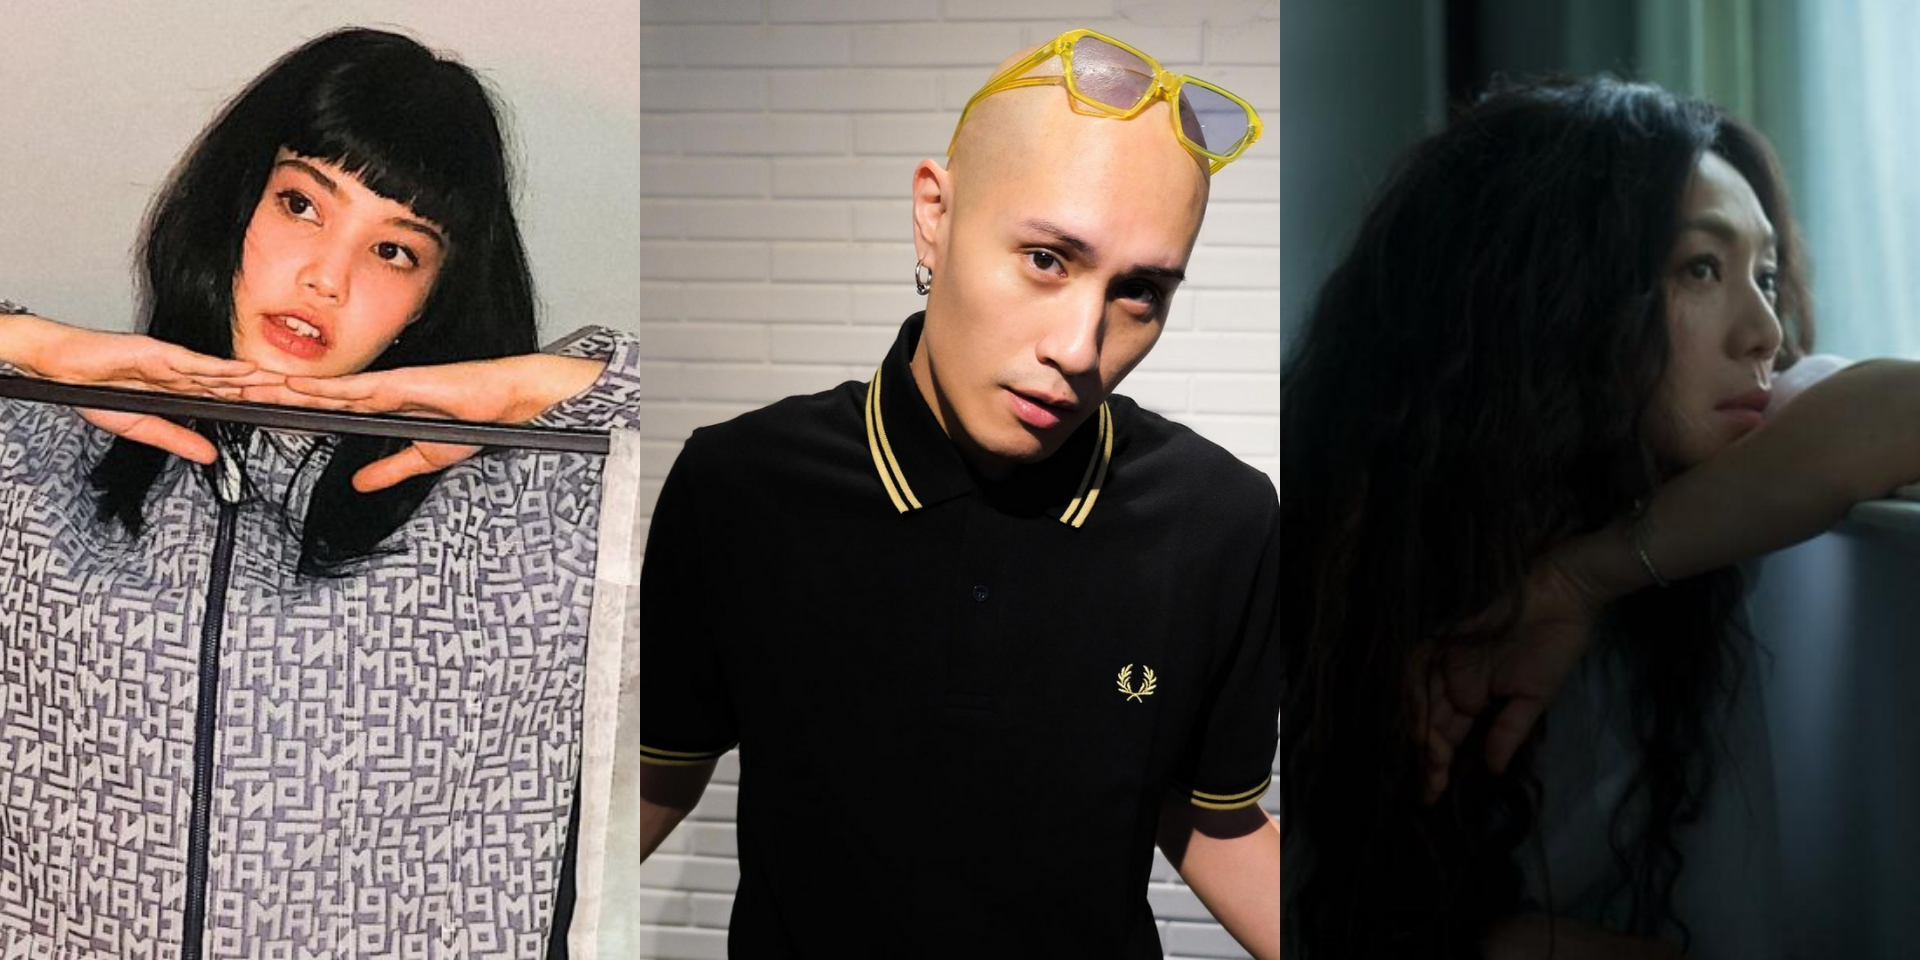 Here are the winners of the 14th Freshmusic Awards – Shye, YELLOW's Hsuan Huang, Wanfang, and more